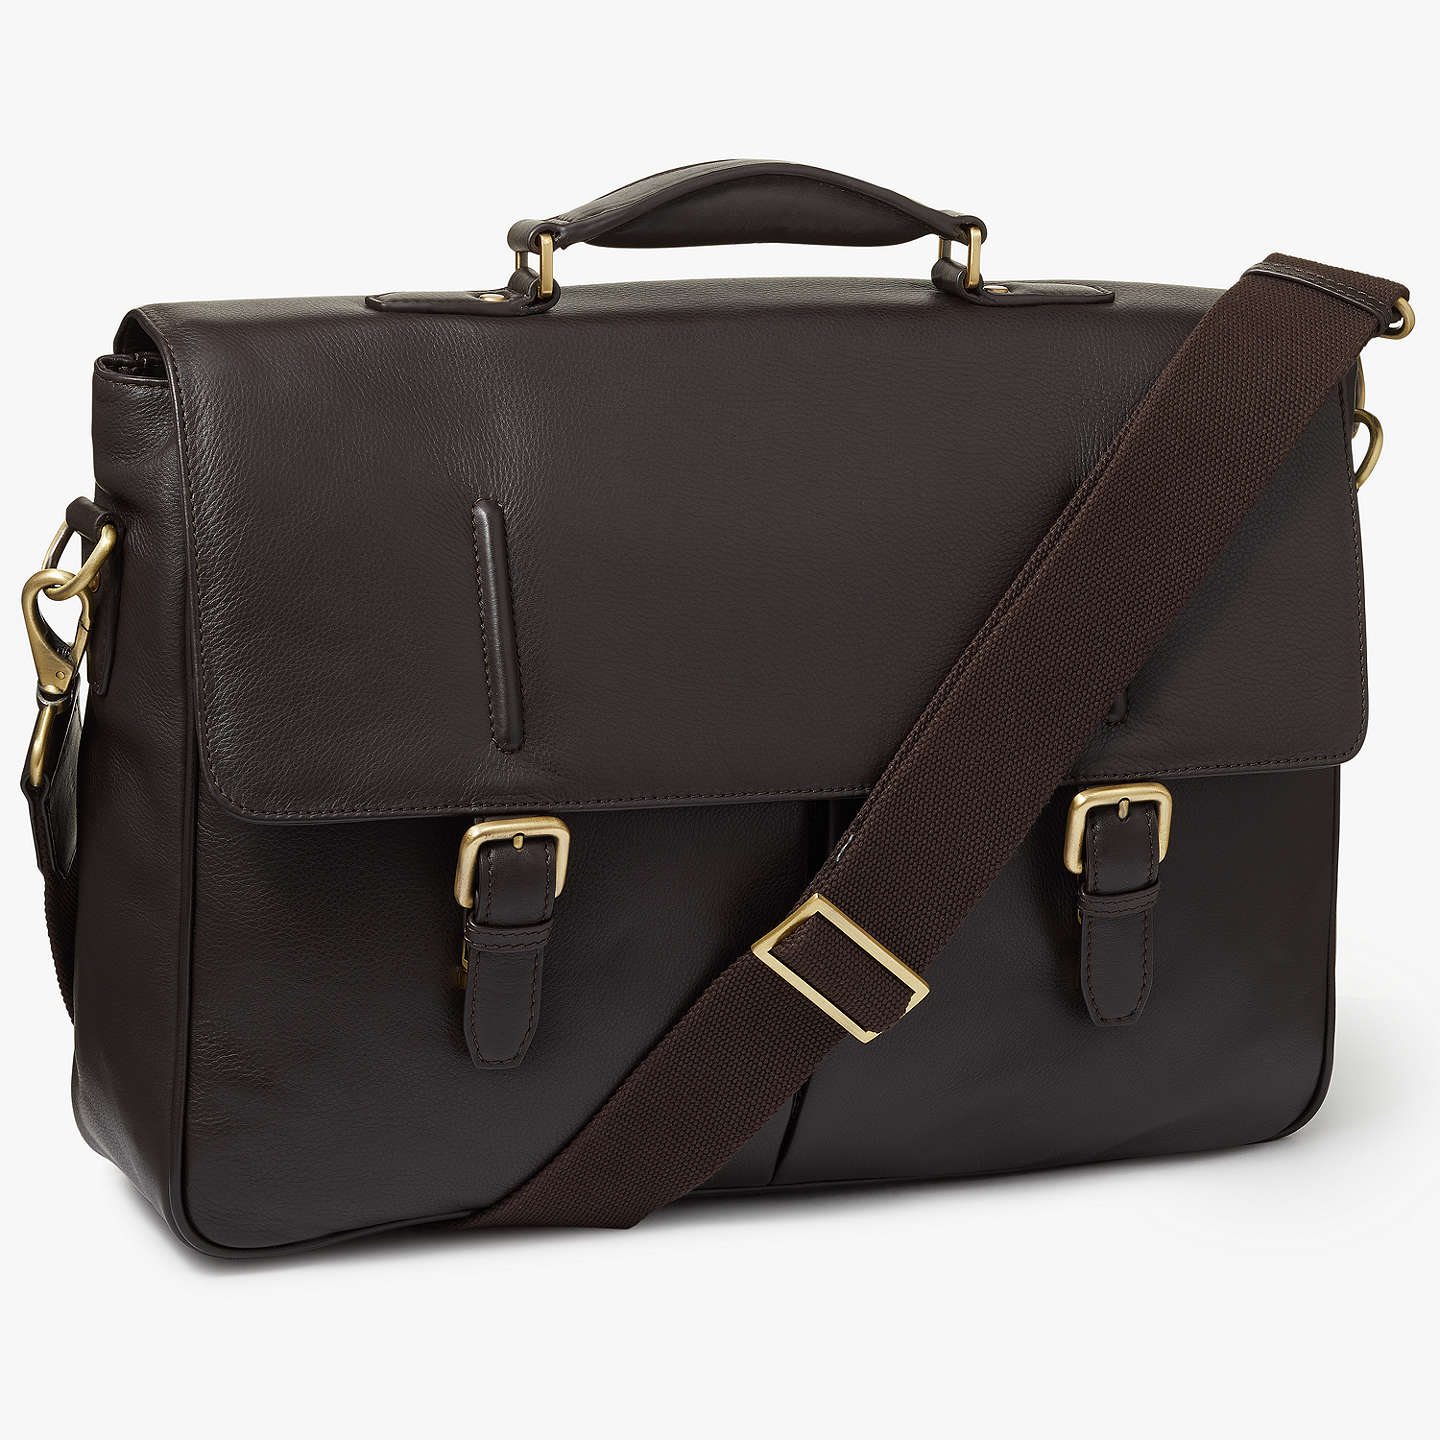 Buyjohn Lewis Salzburg Leather Briefcase, Brown Online At Johnlewiscom